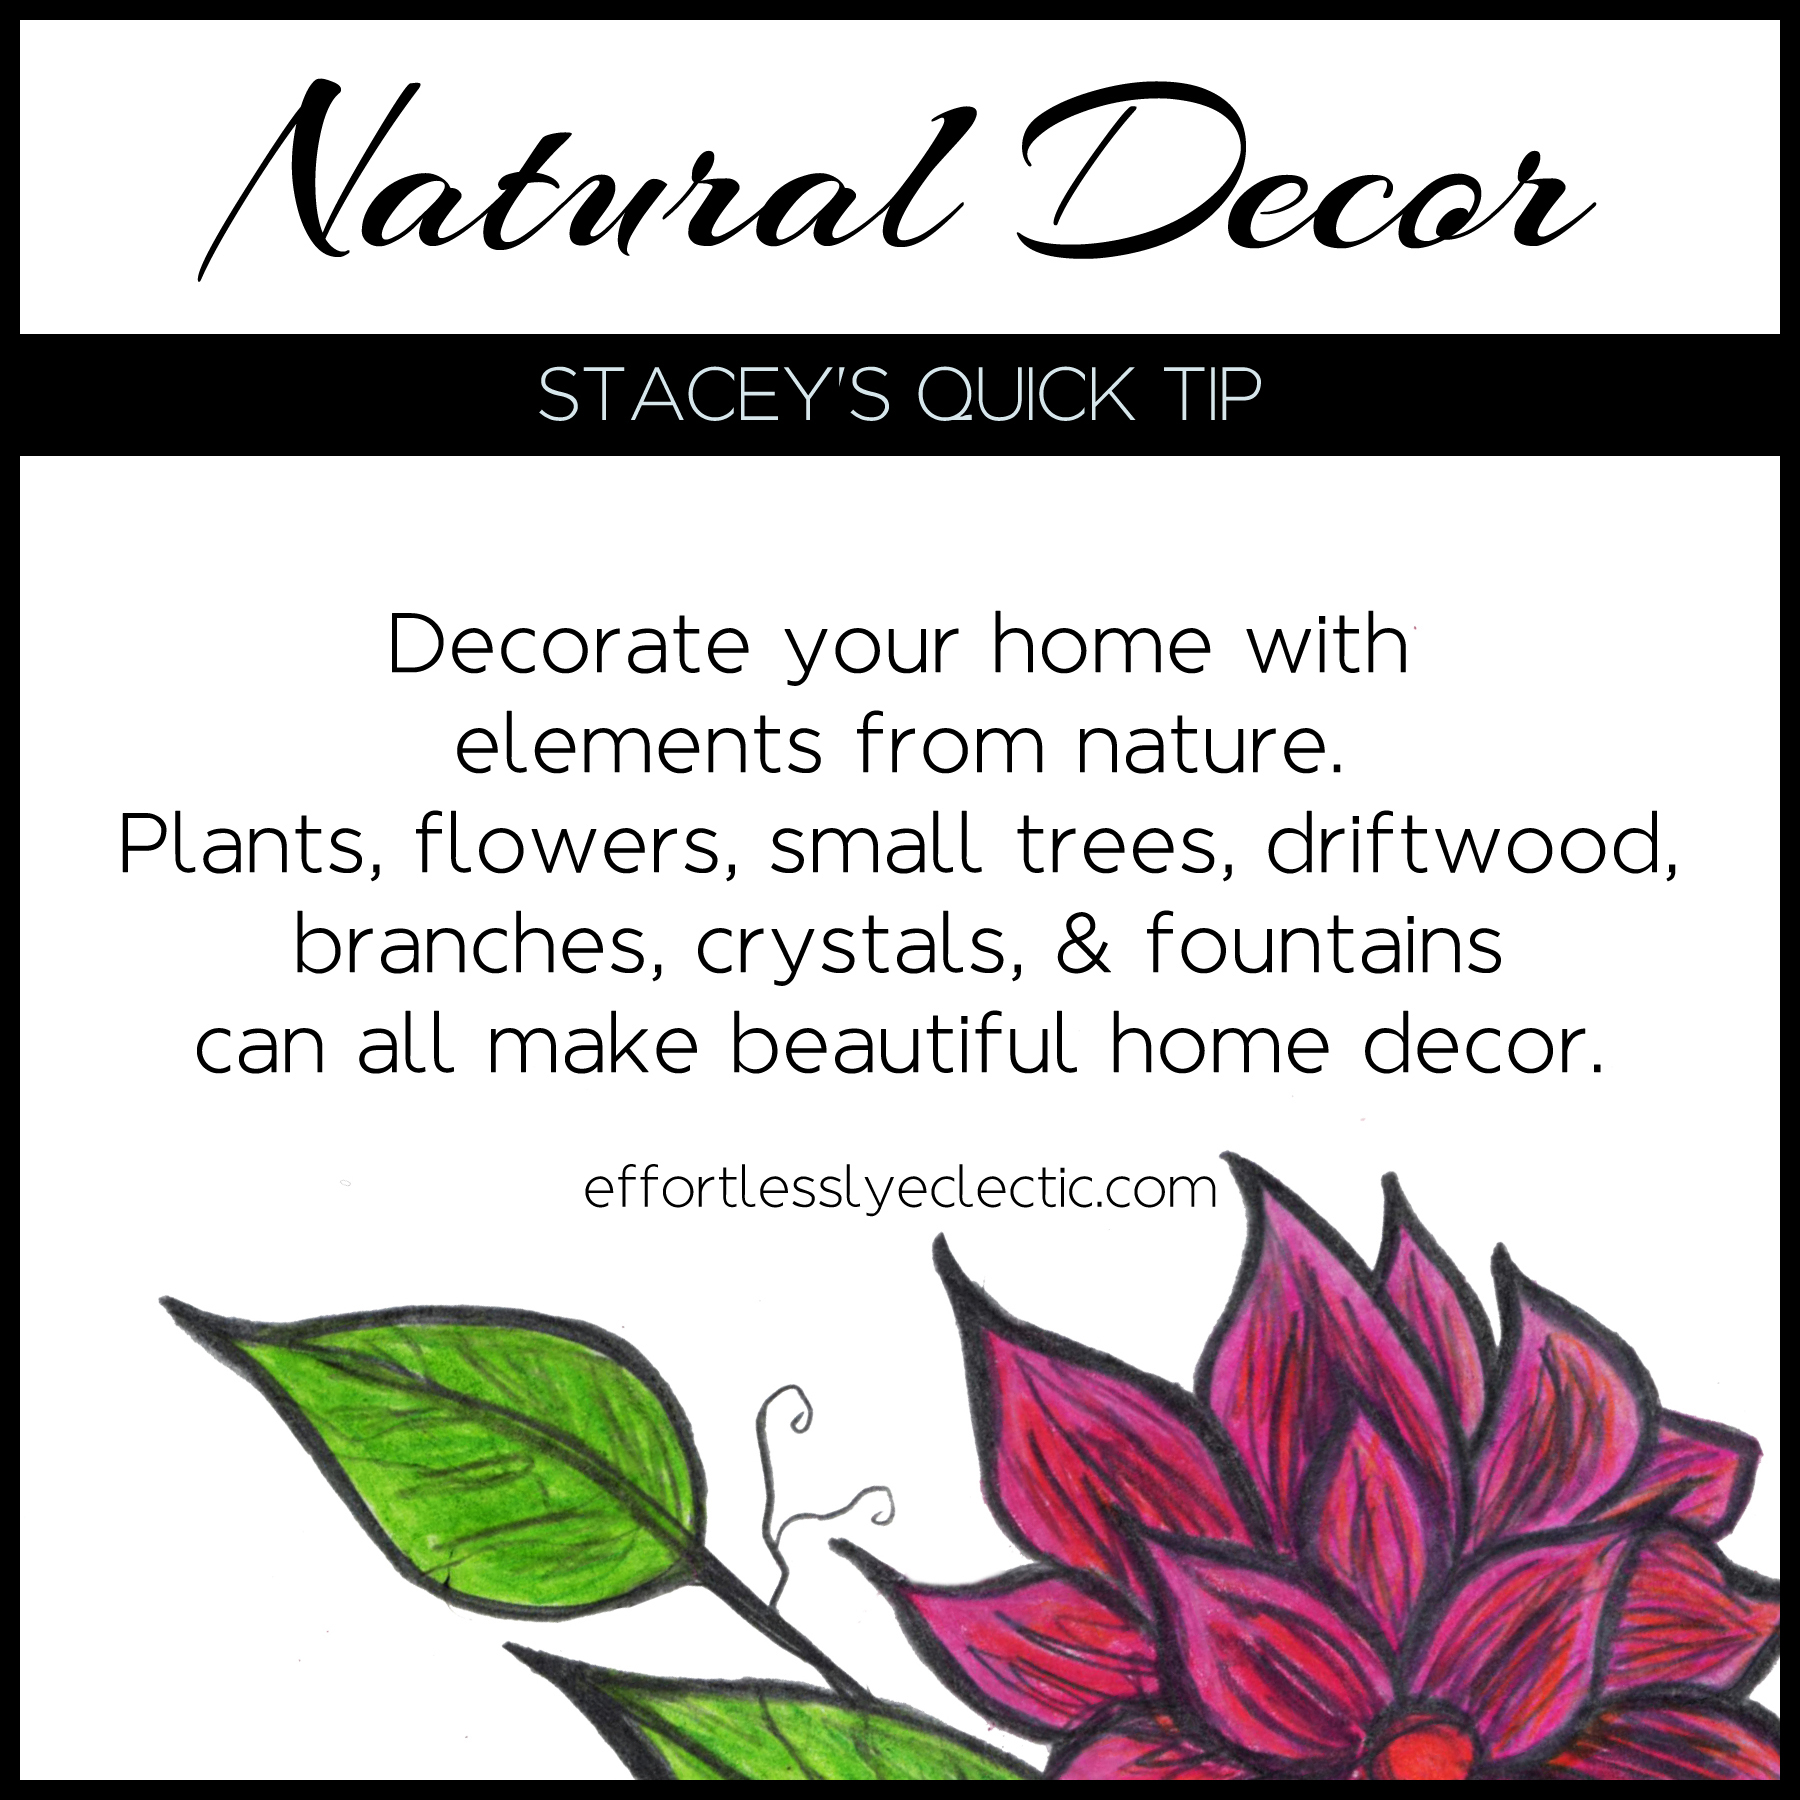 Natural Decor - A home styling tip about how to bring nature indoors